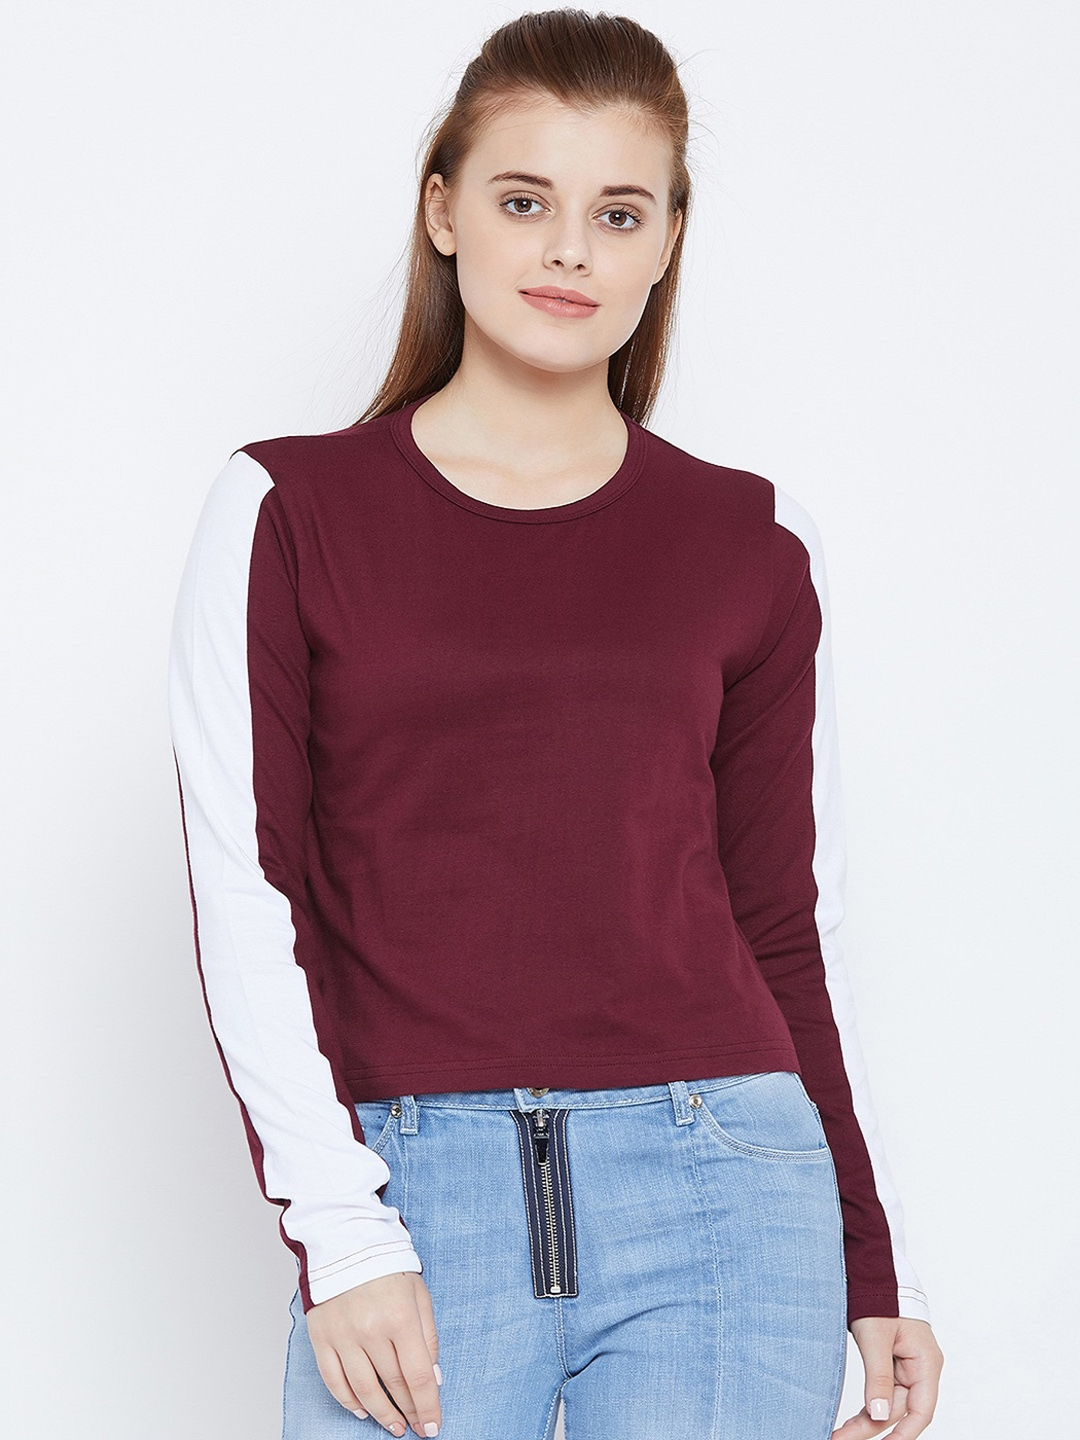 The Dry State Women Maroon Solid Round Neck T shirt